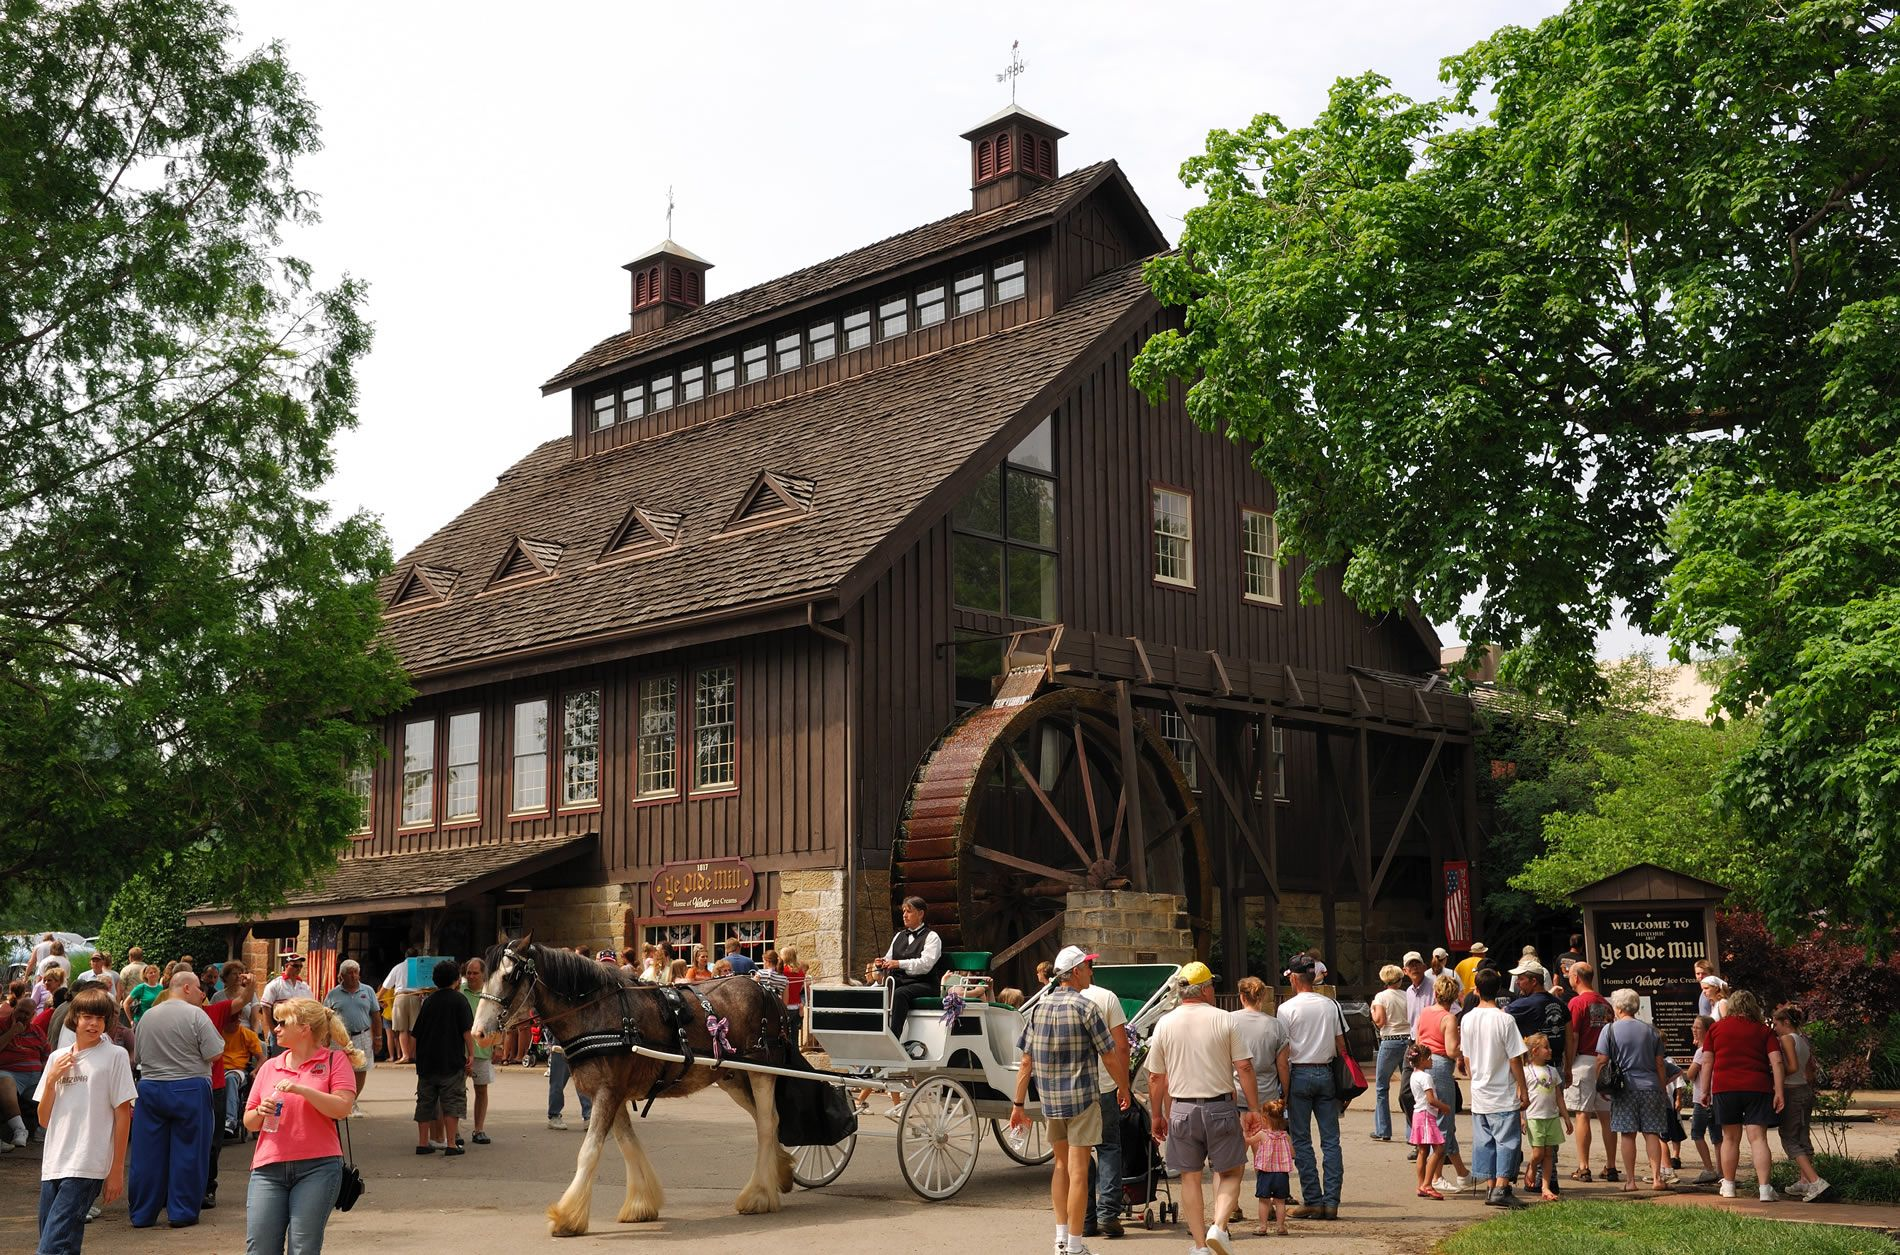 Things to Do in Ohio Amish Country Ohio vacations